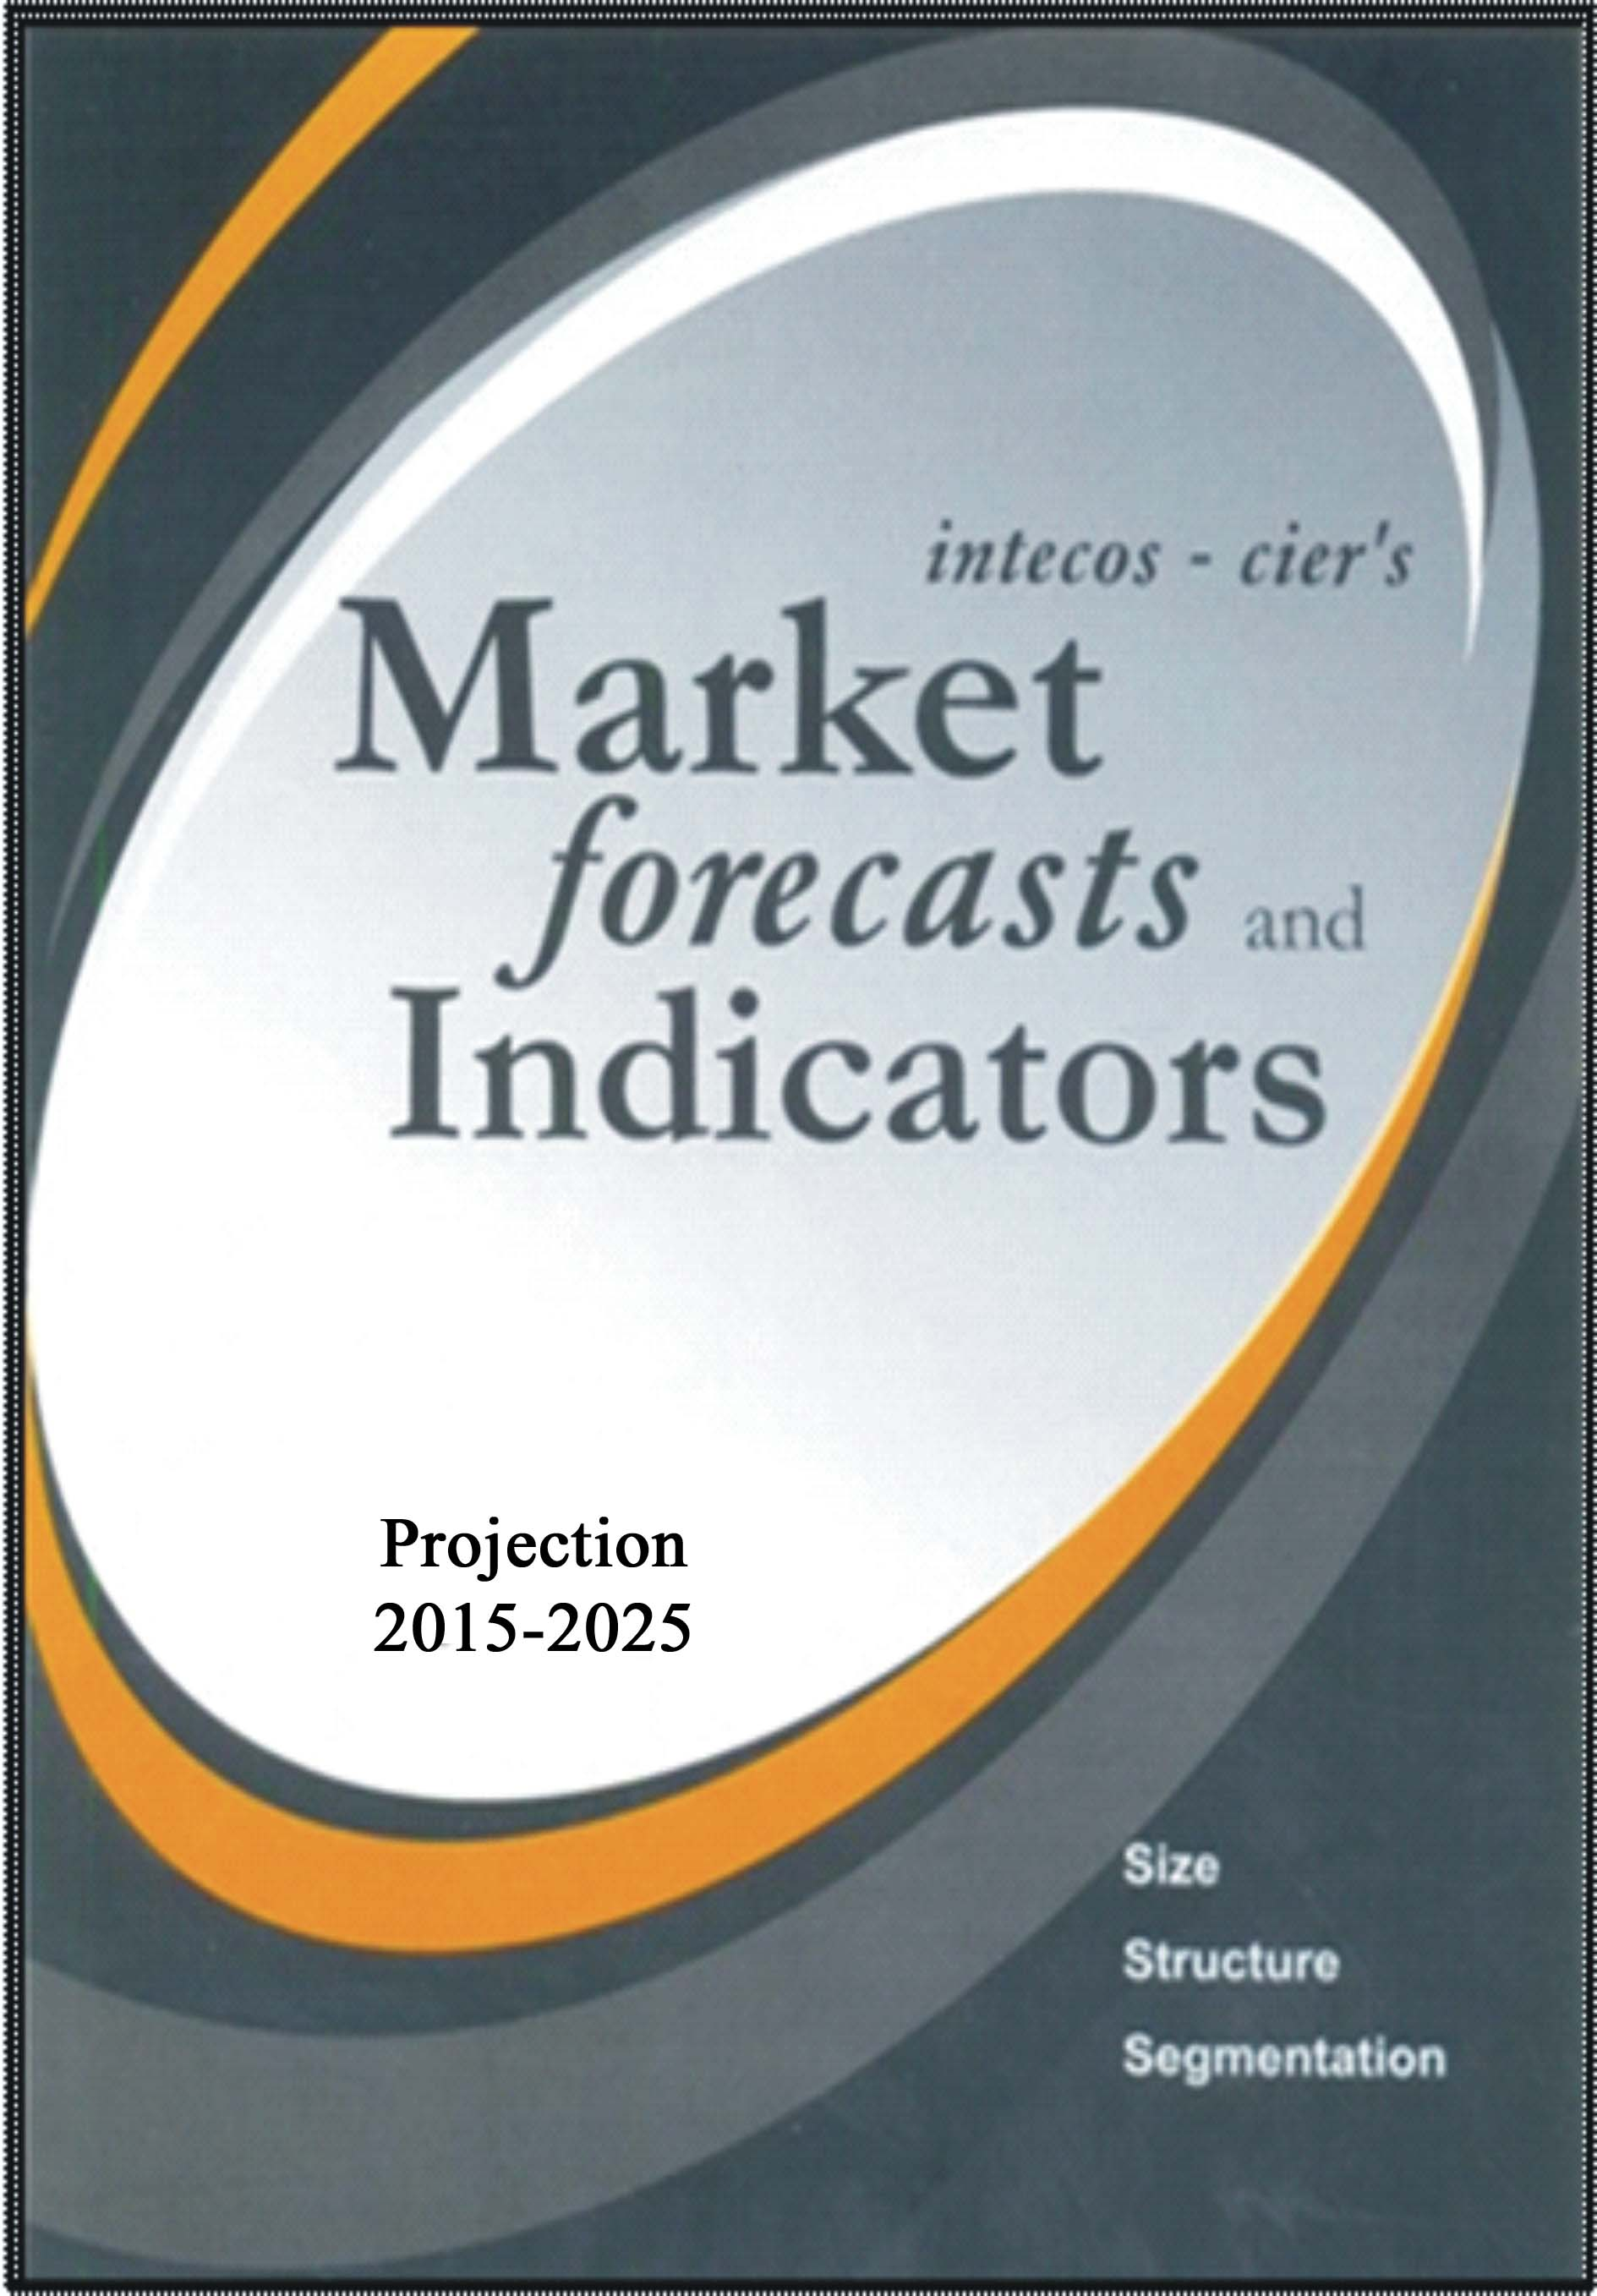 Market Forecasts Indicators • 1997-2007; 2002-2012; 2010-2020; 2015-2025